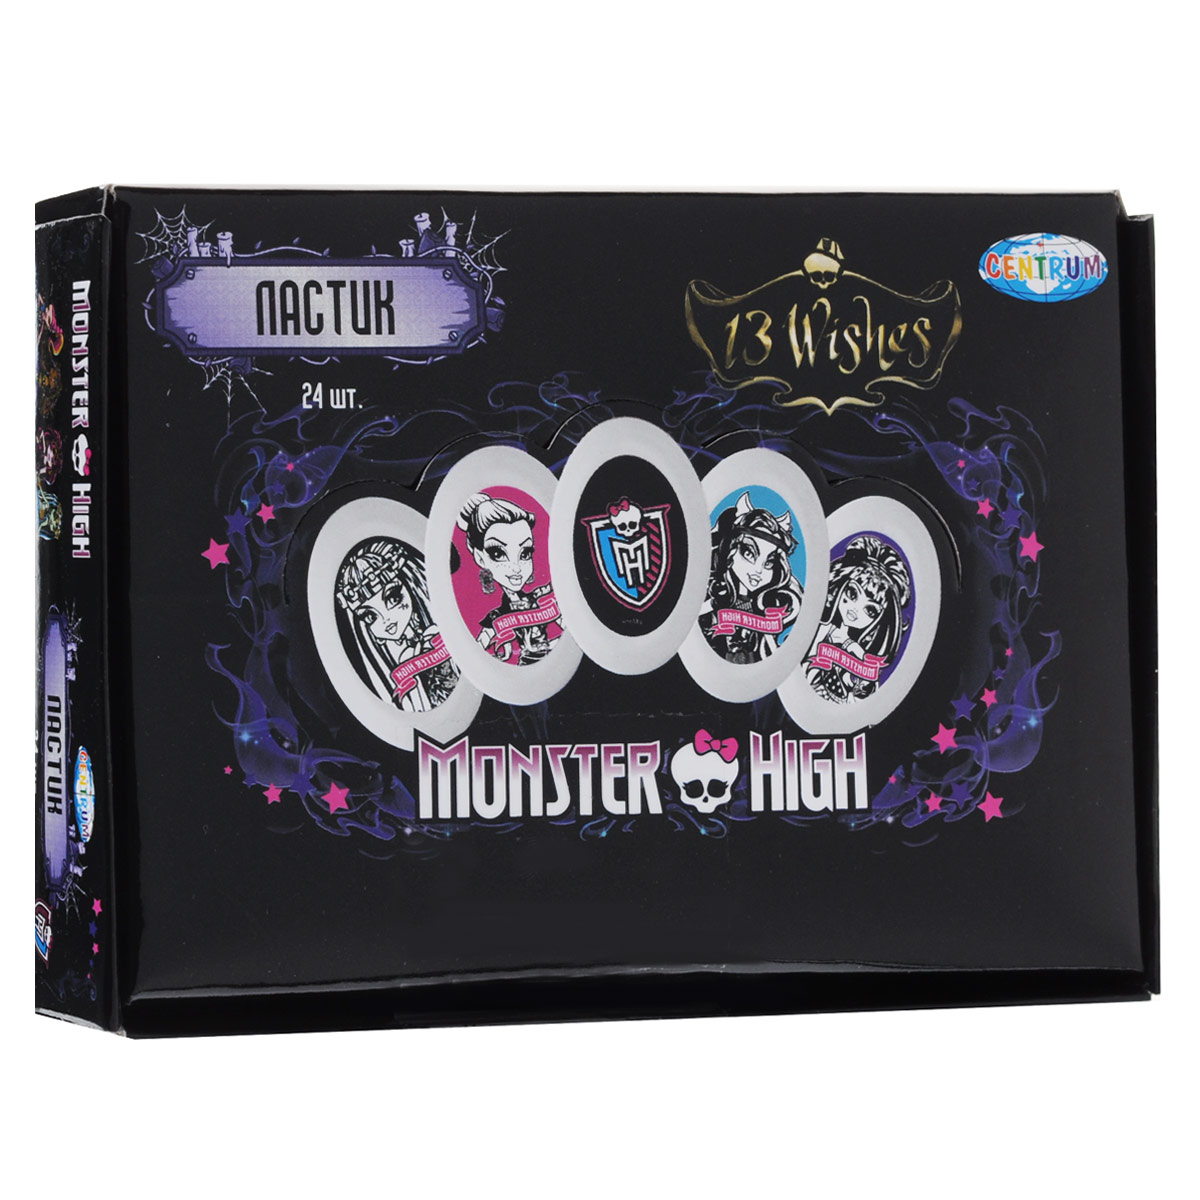 Набор ластиков Monster High, 24 шт брелок monster high череп